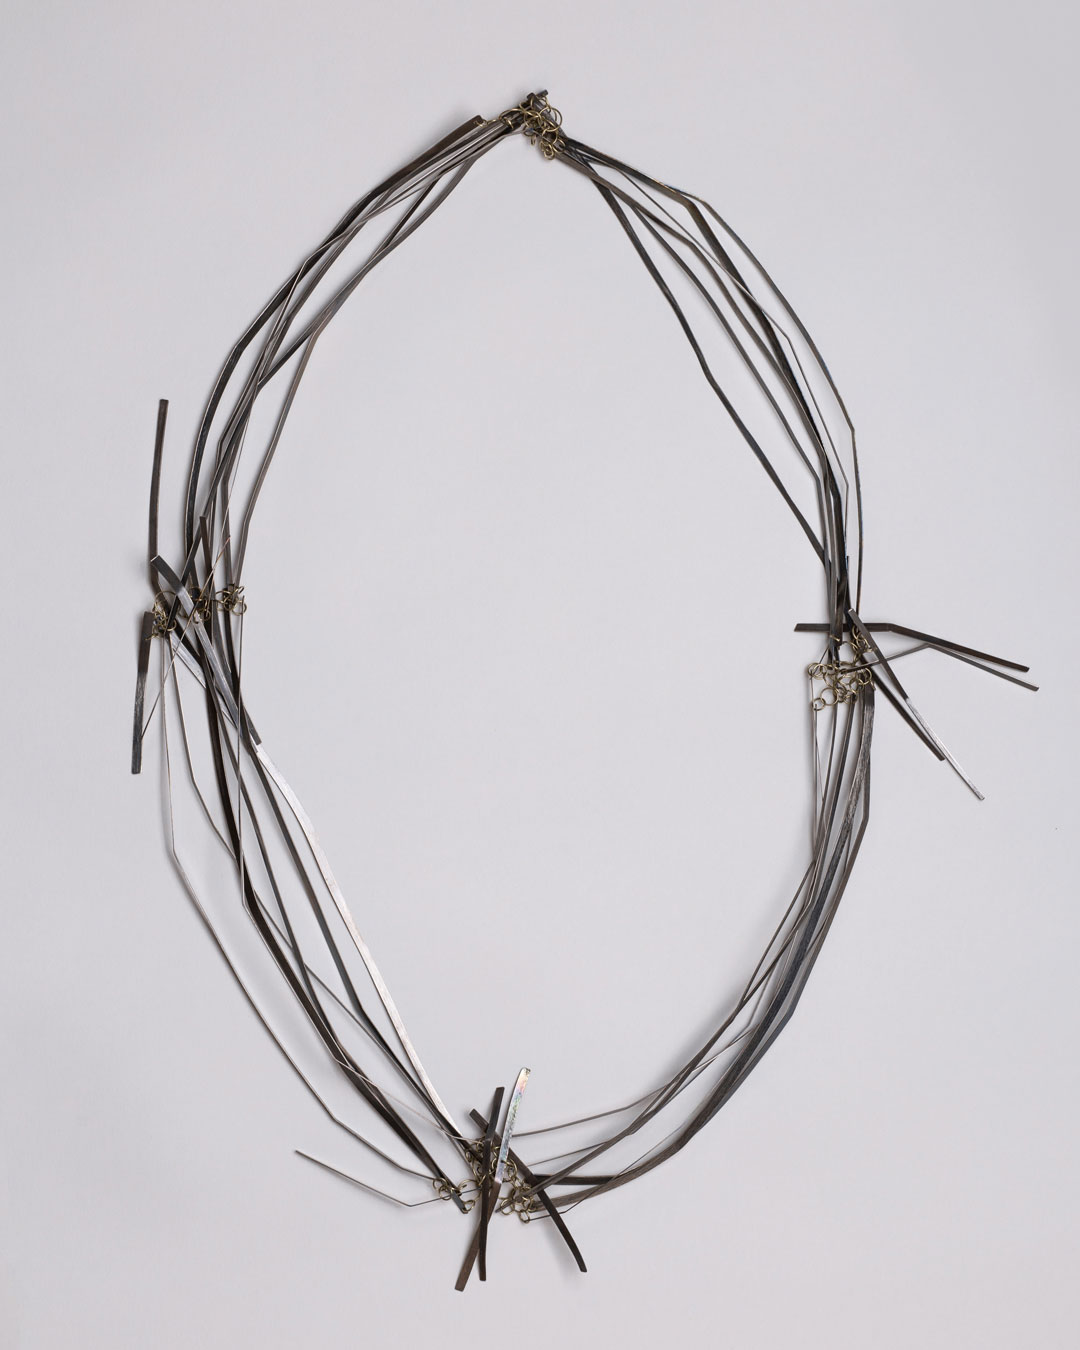 Antje Bräuer, In Between, 2018, necklace; titanium, 14ct gold, 400 x 220 x 15 mm, €3650